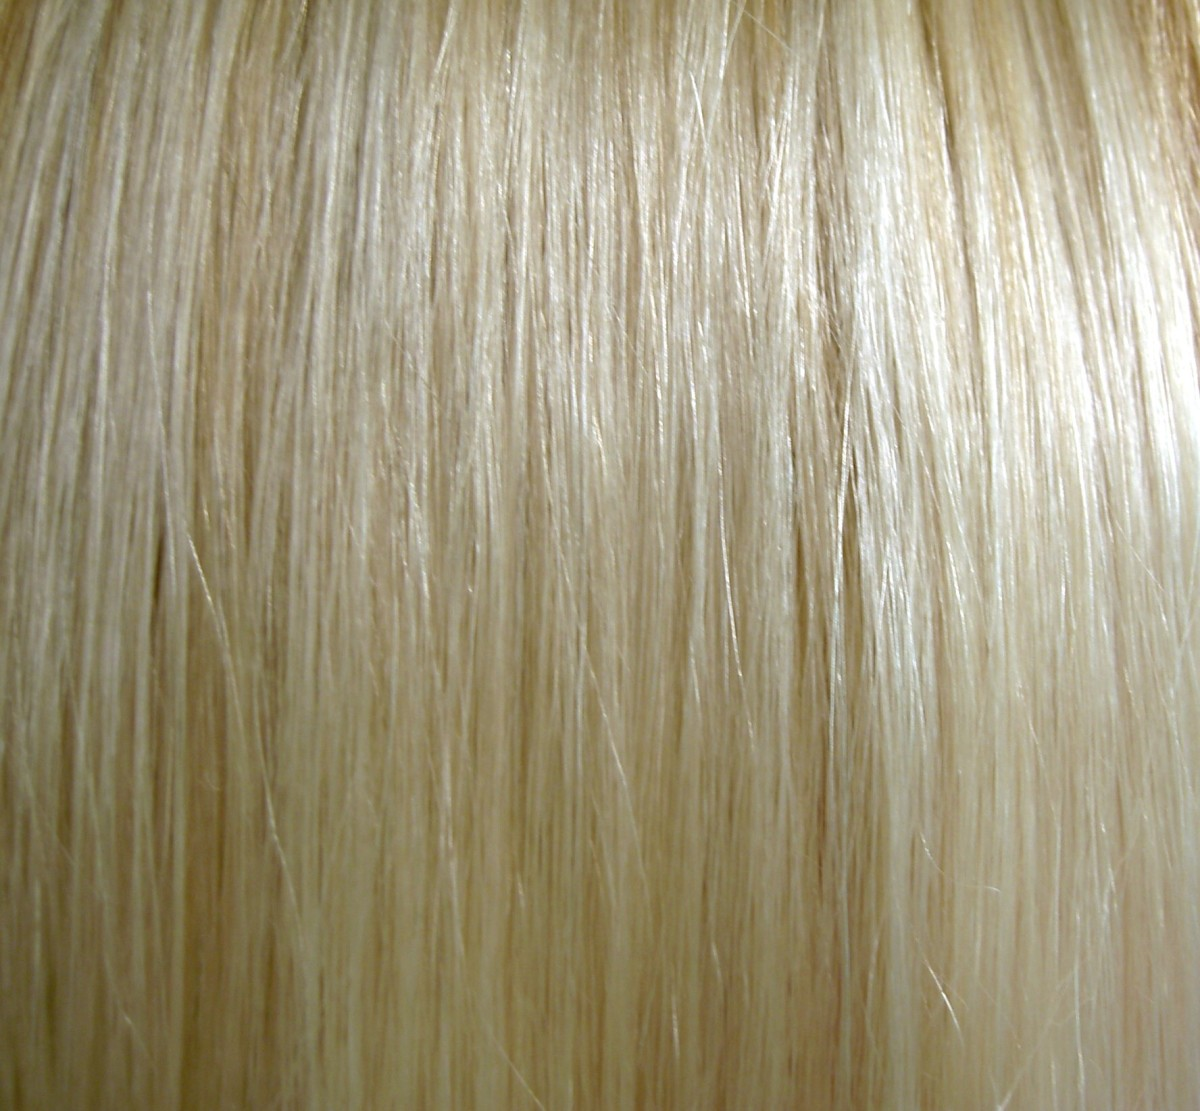 Clean and no chemicals. Hair washed with baking soda is shiny and looks lighter.